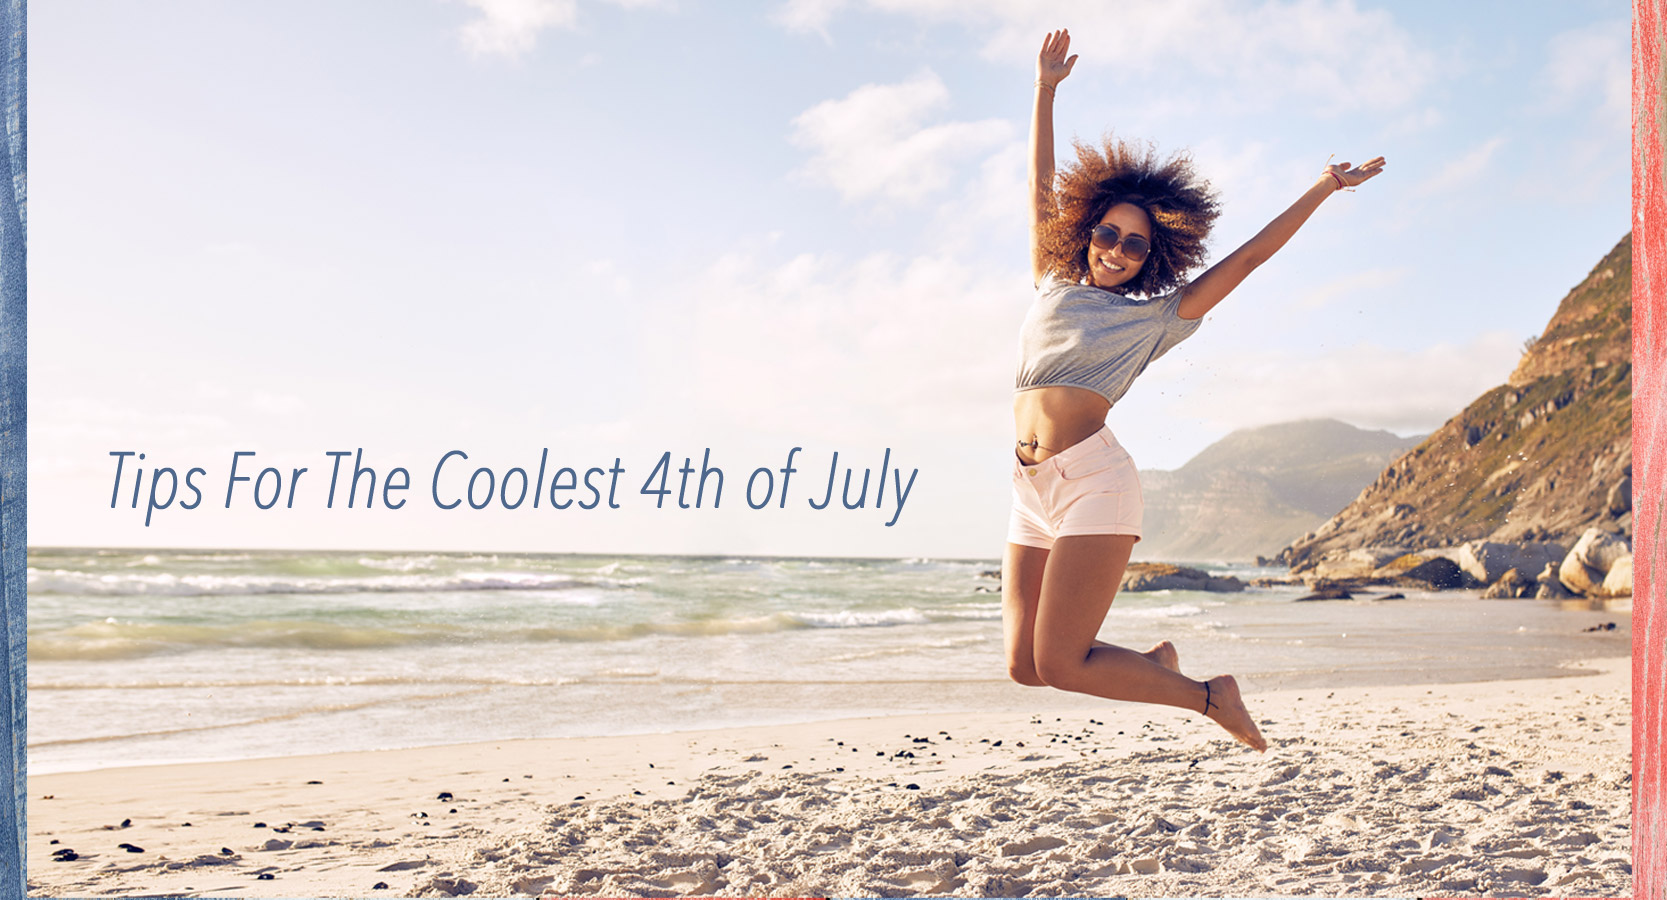 5-Tips-For-The-Coolest-4th-of-July-This-Summer